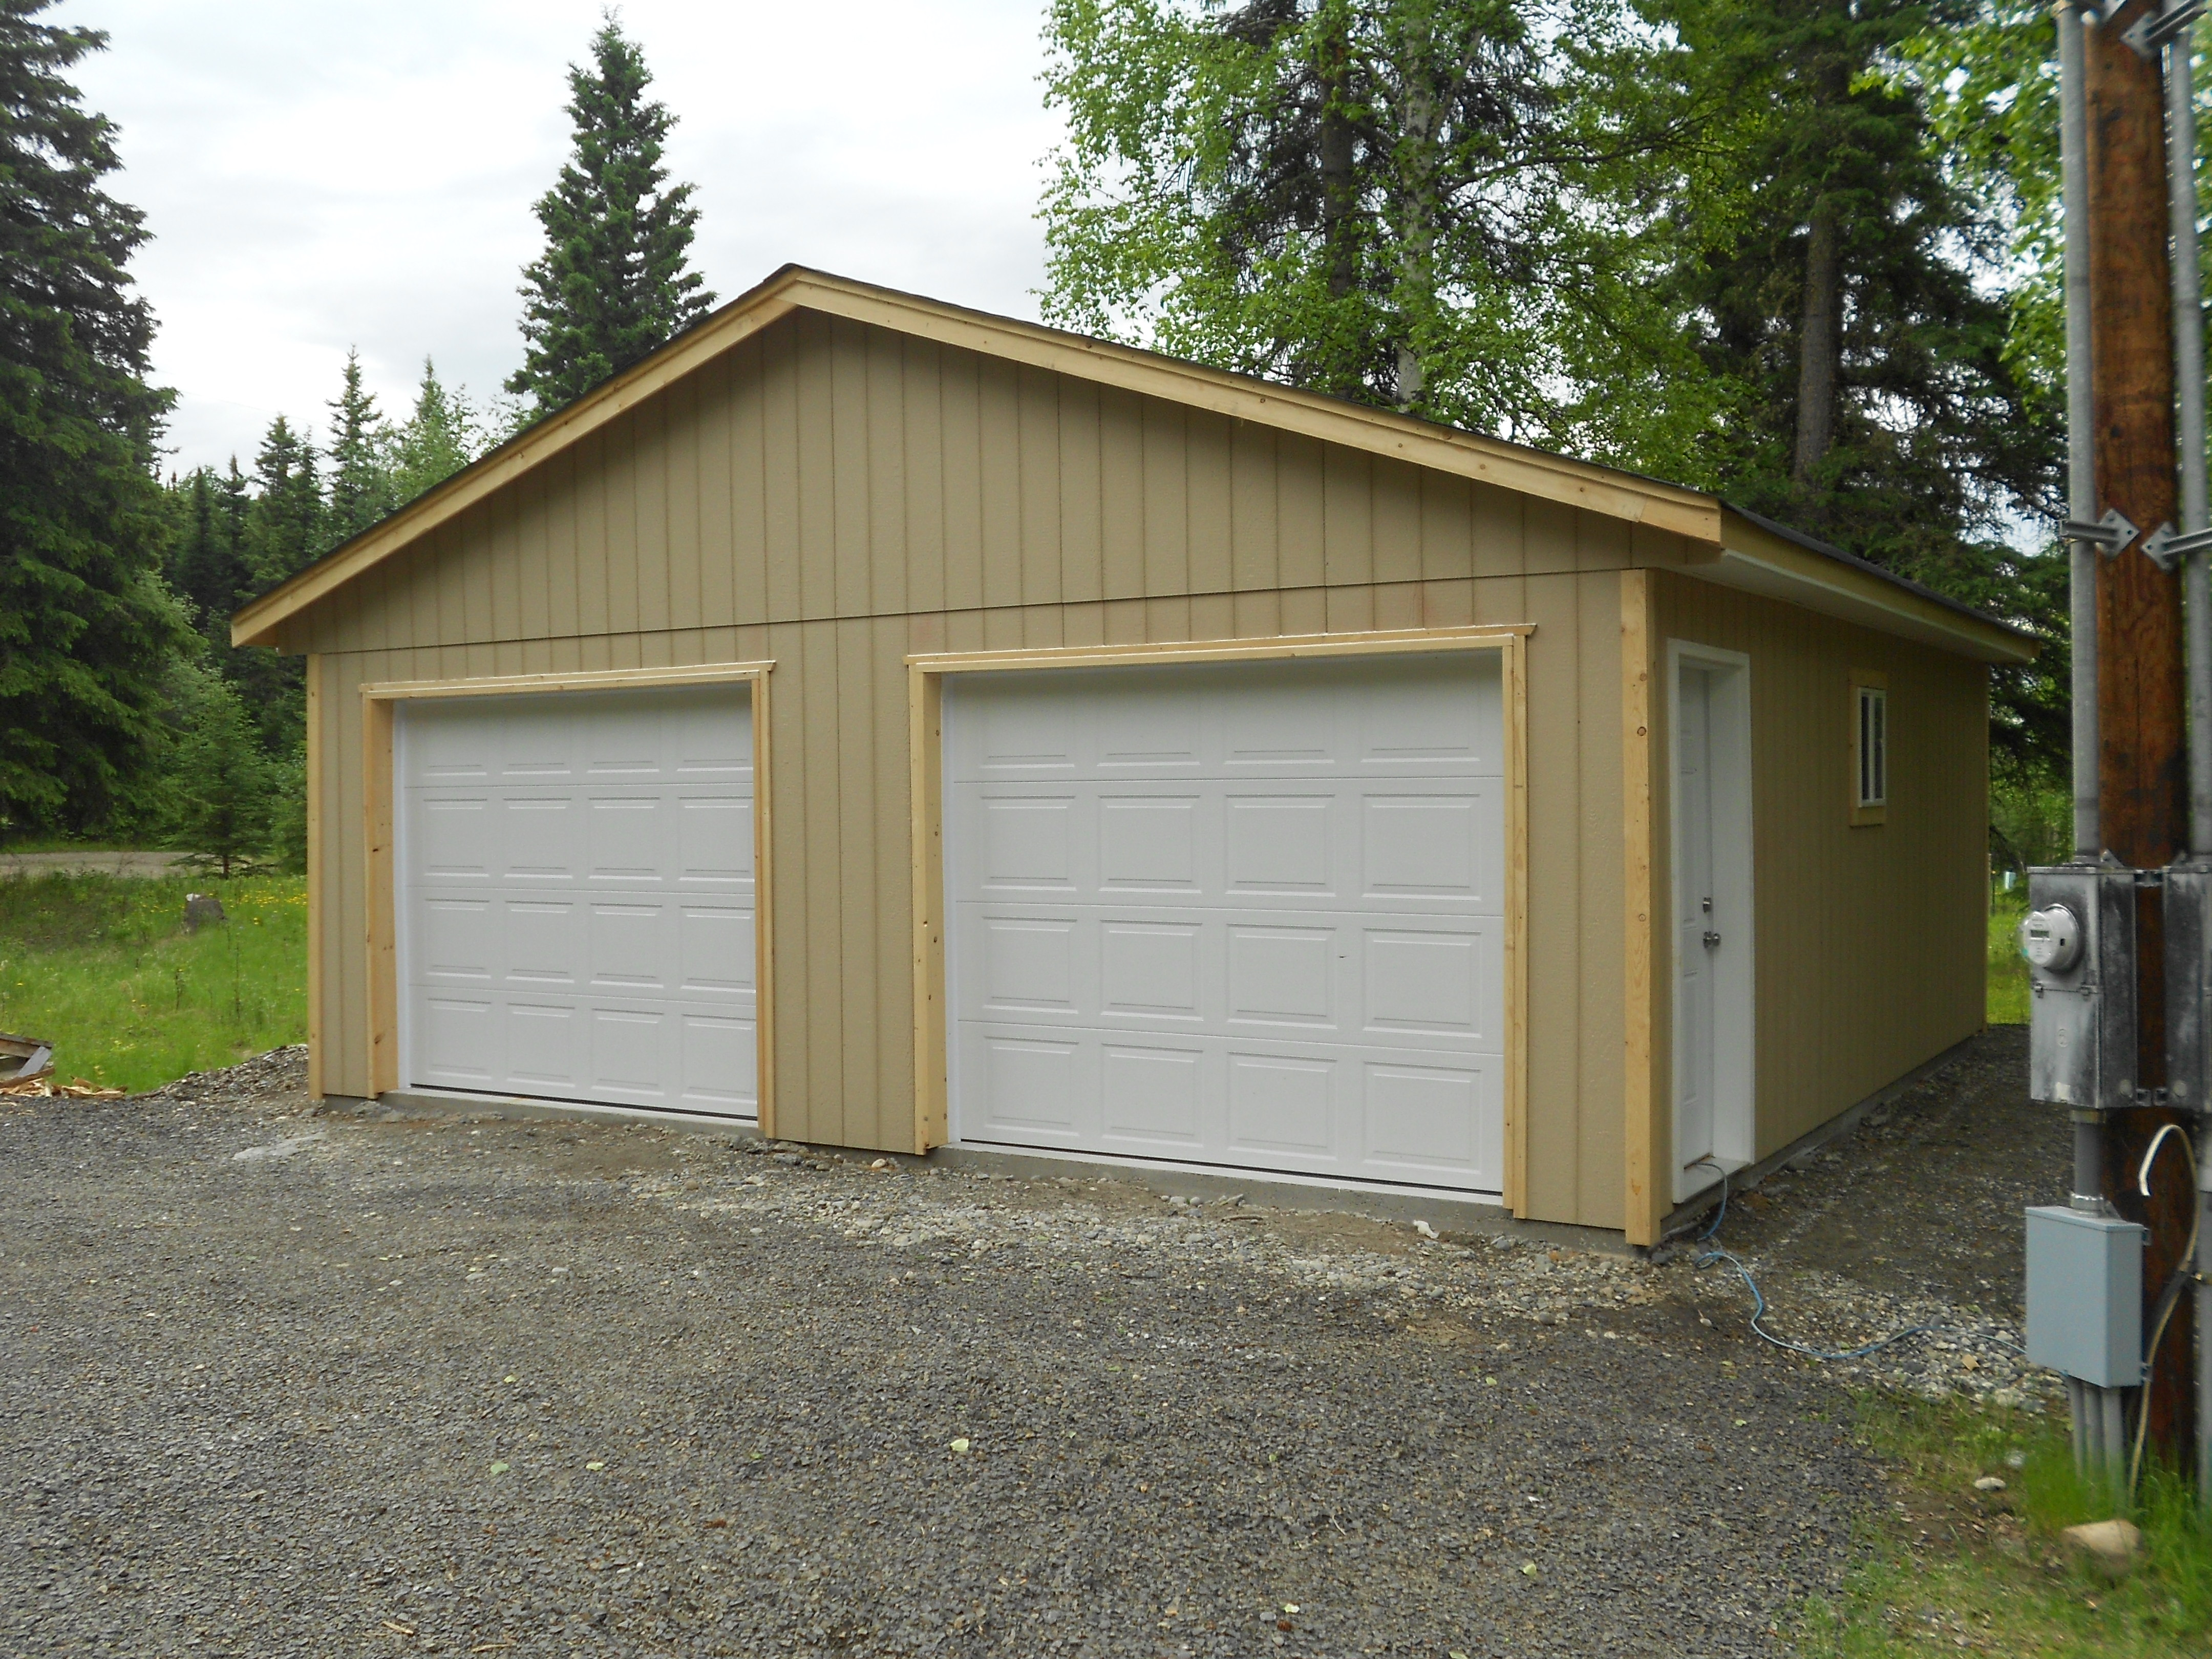 garages shed sale garaports side garage large industrial custom for products eaves sheds view with